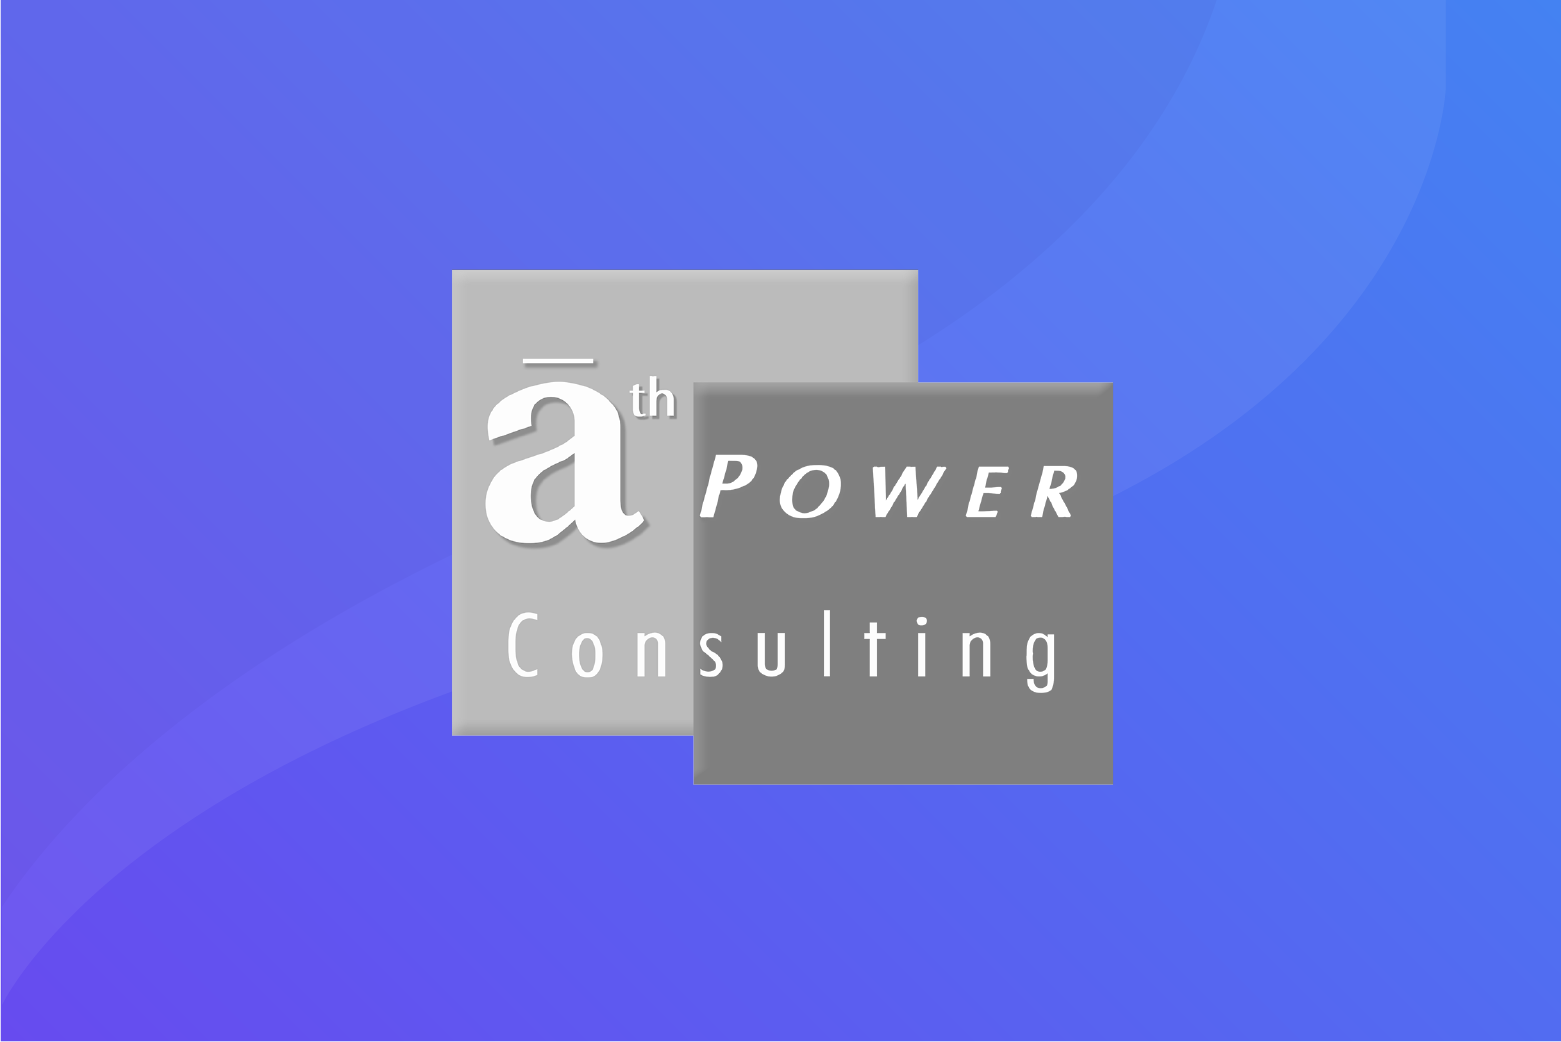 Checkbook Partners with ath Power Consulting